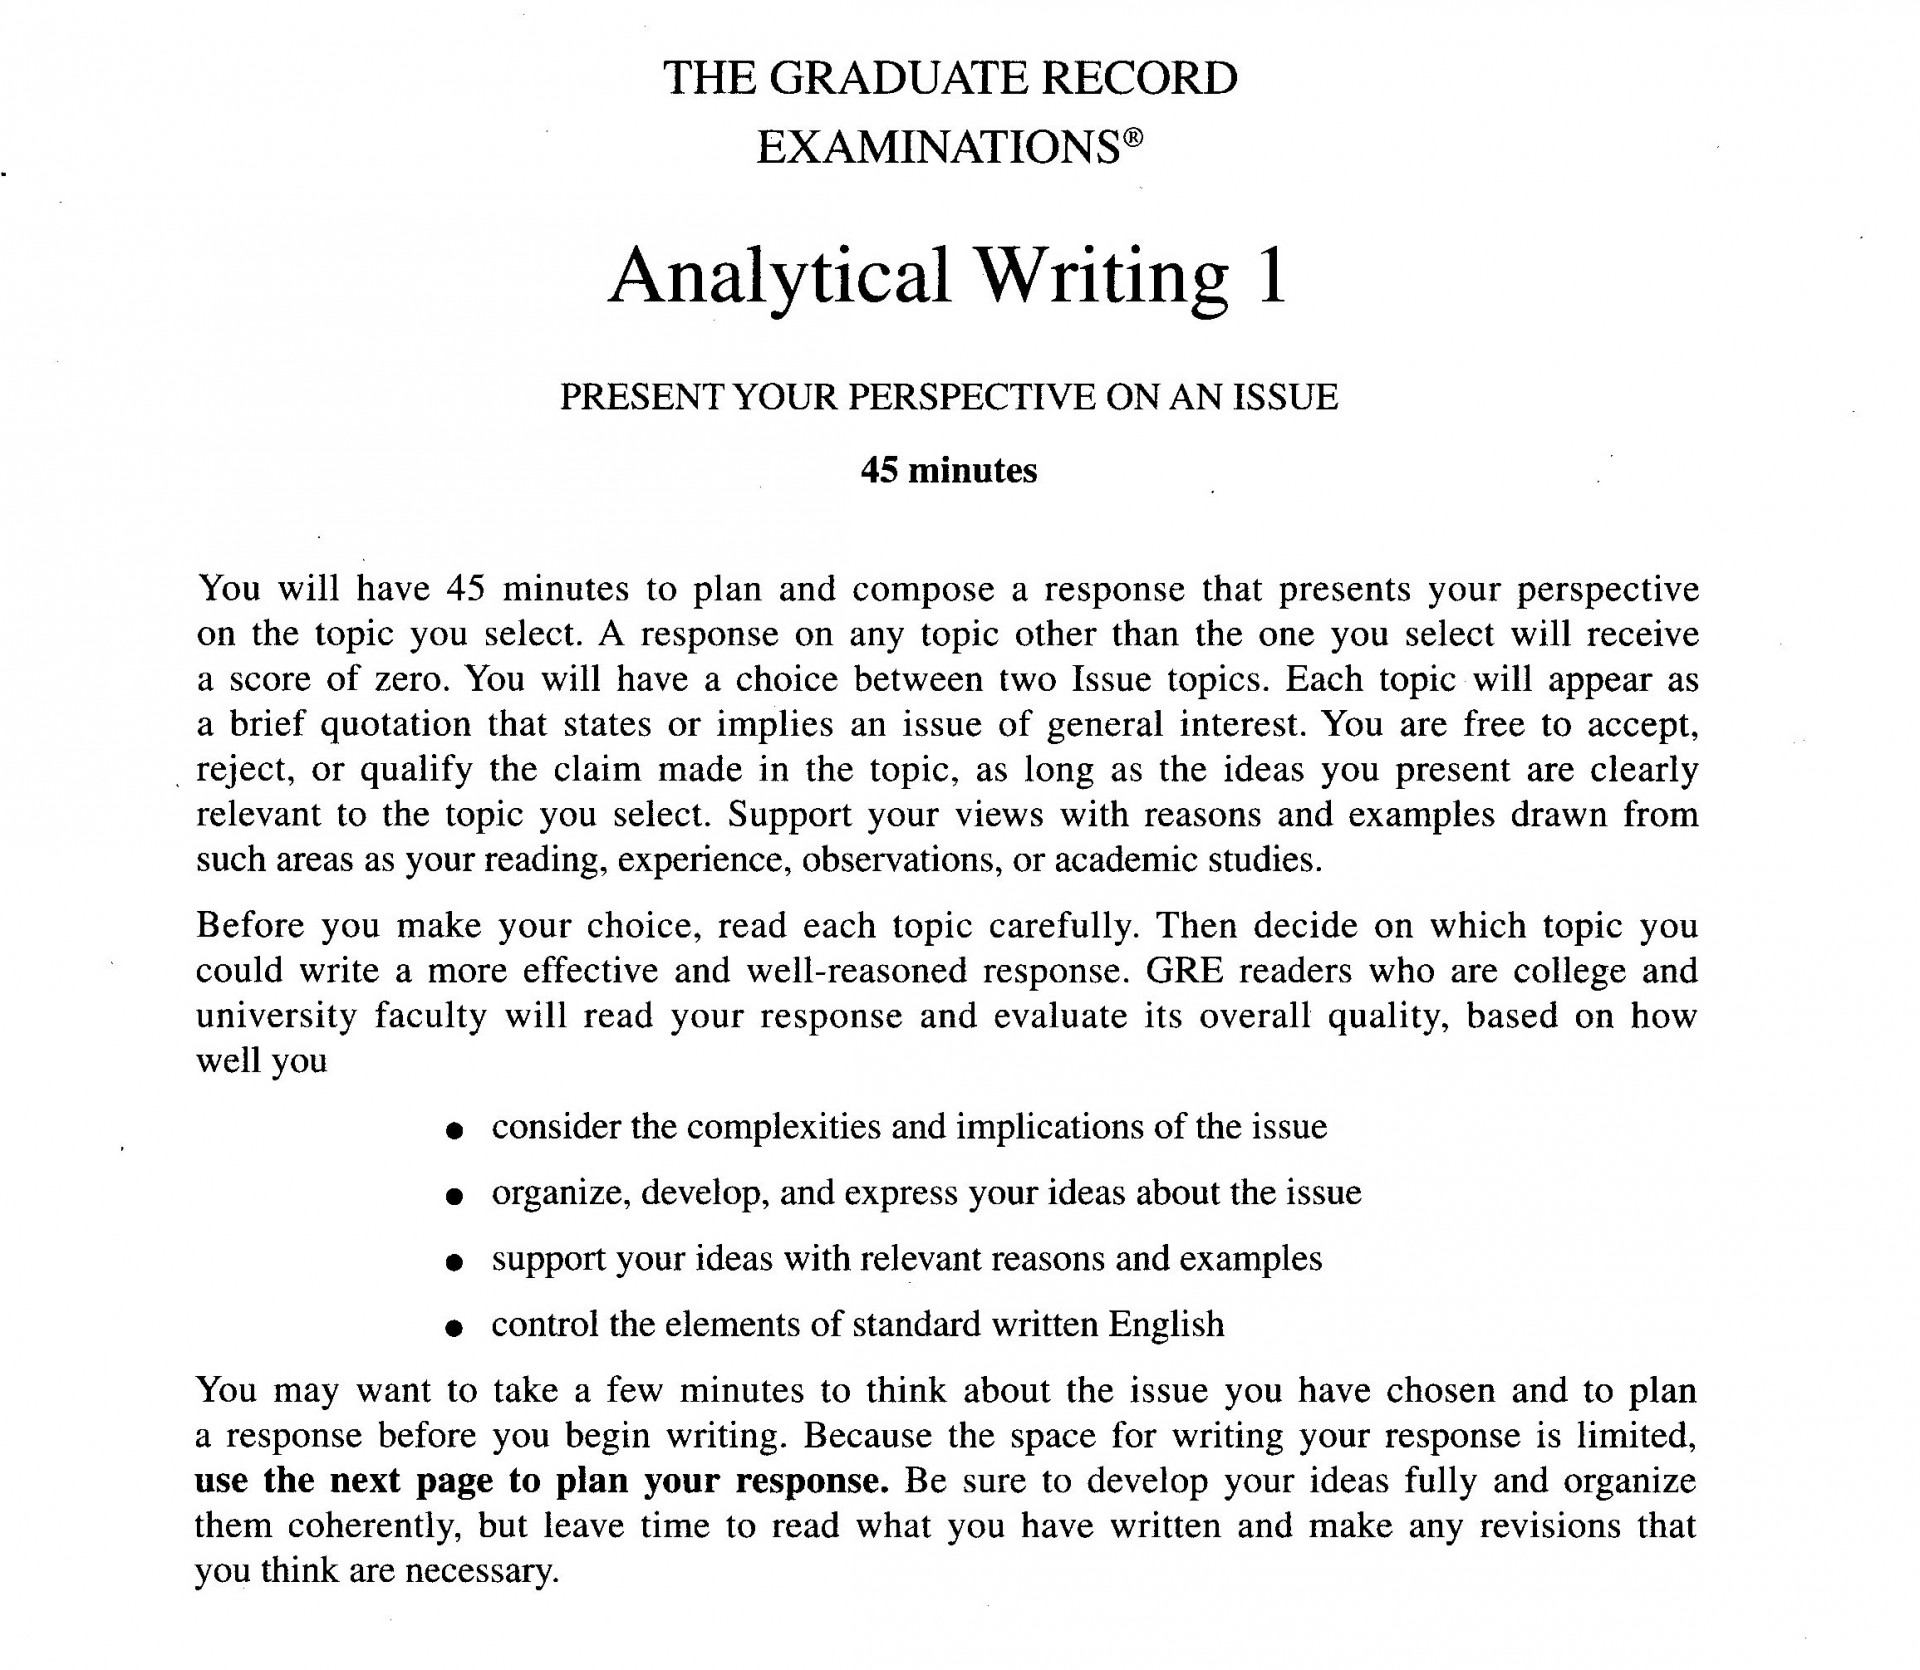 011 Essay Writer Free Analytical20writing20issue20task20directions20for20gre201 Amazing App Generator Software Download 1920